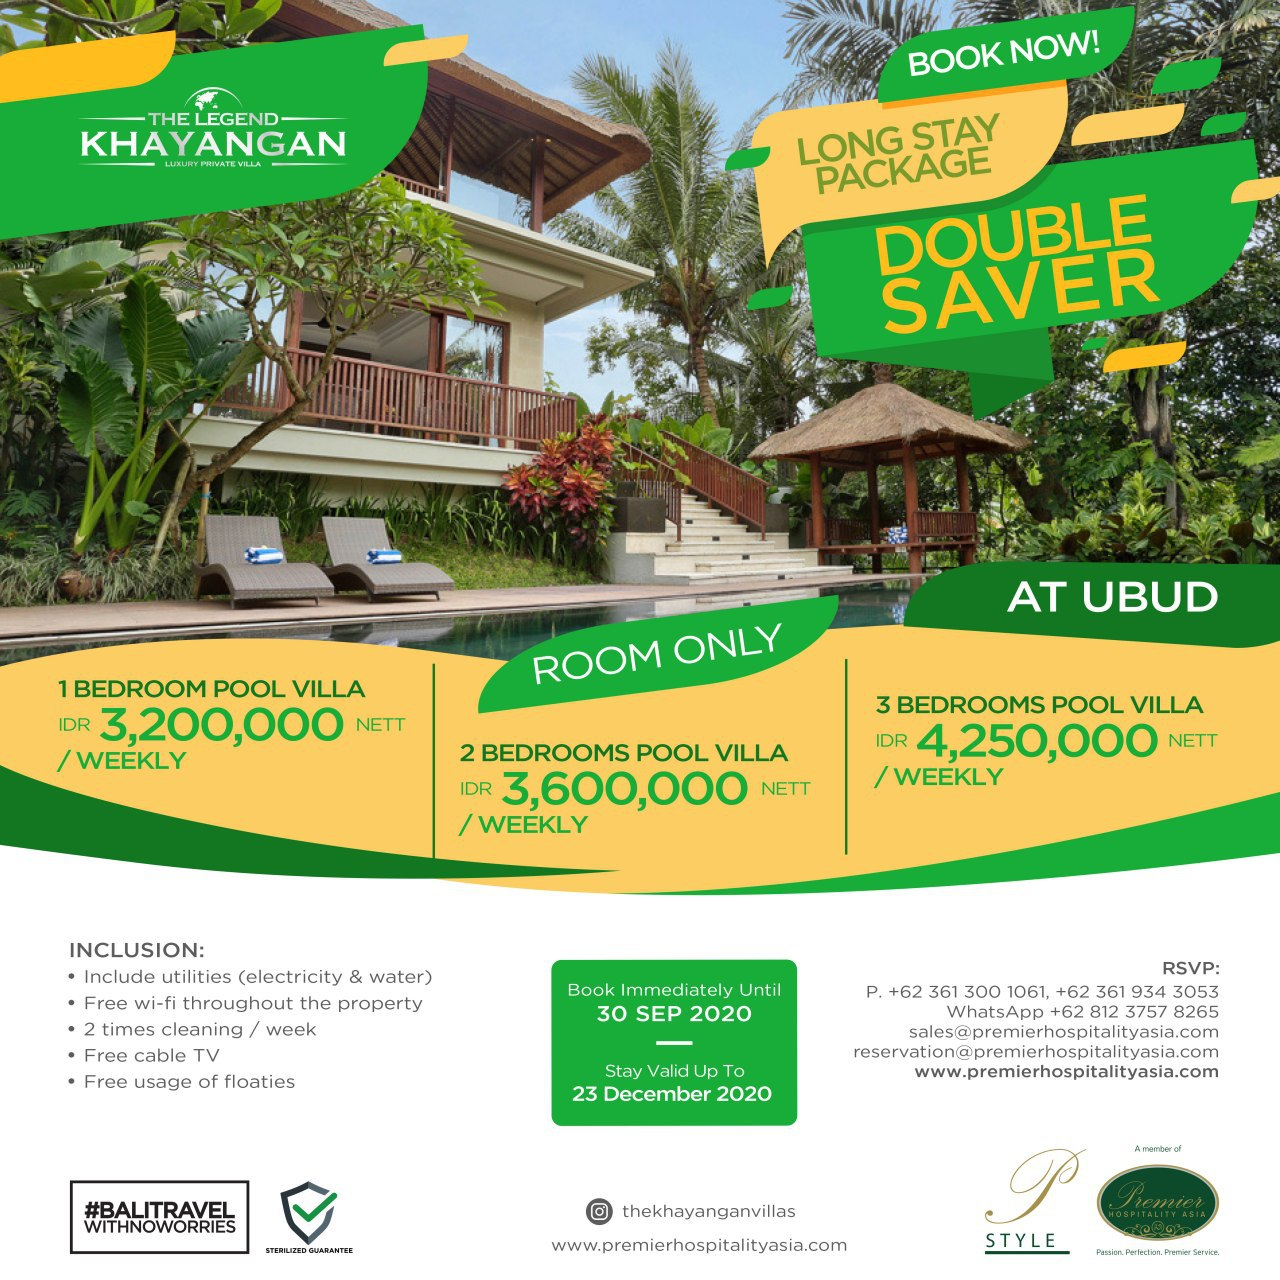 khayangan-kemenuh-villas-ubud-3-bedroom-villa-long-stay-long-term-weekly-rental